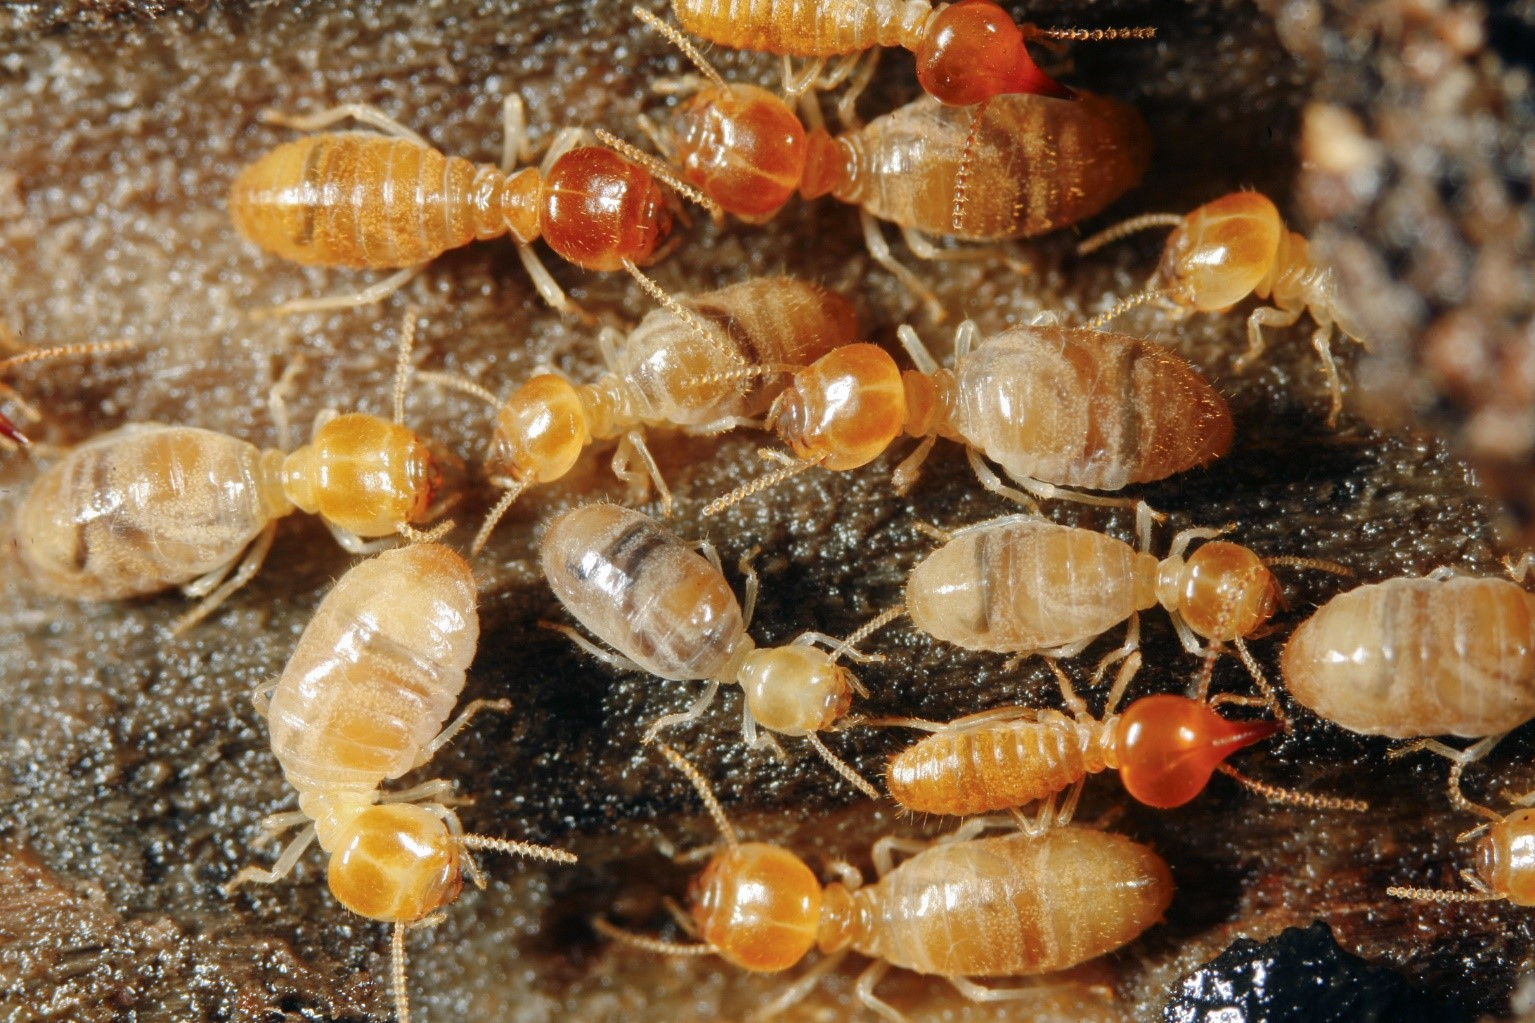 Termites-that-could-have-been-prevented-but-are-now-a-problem